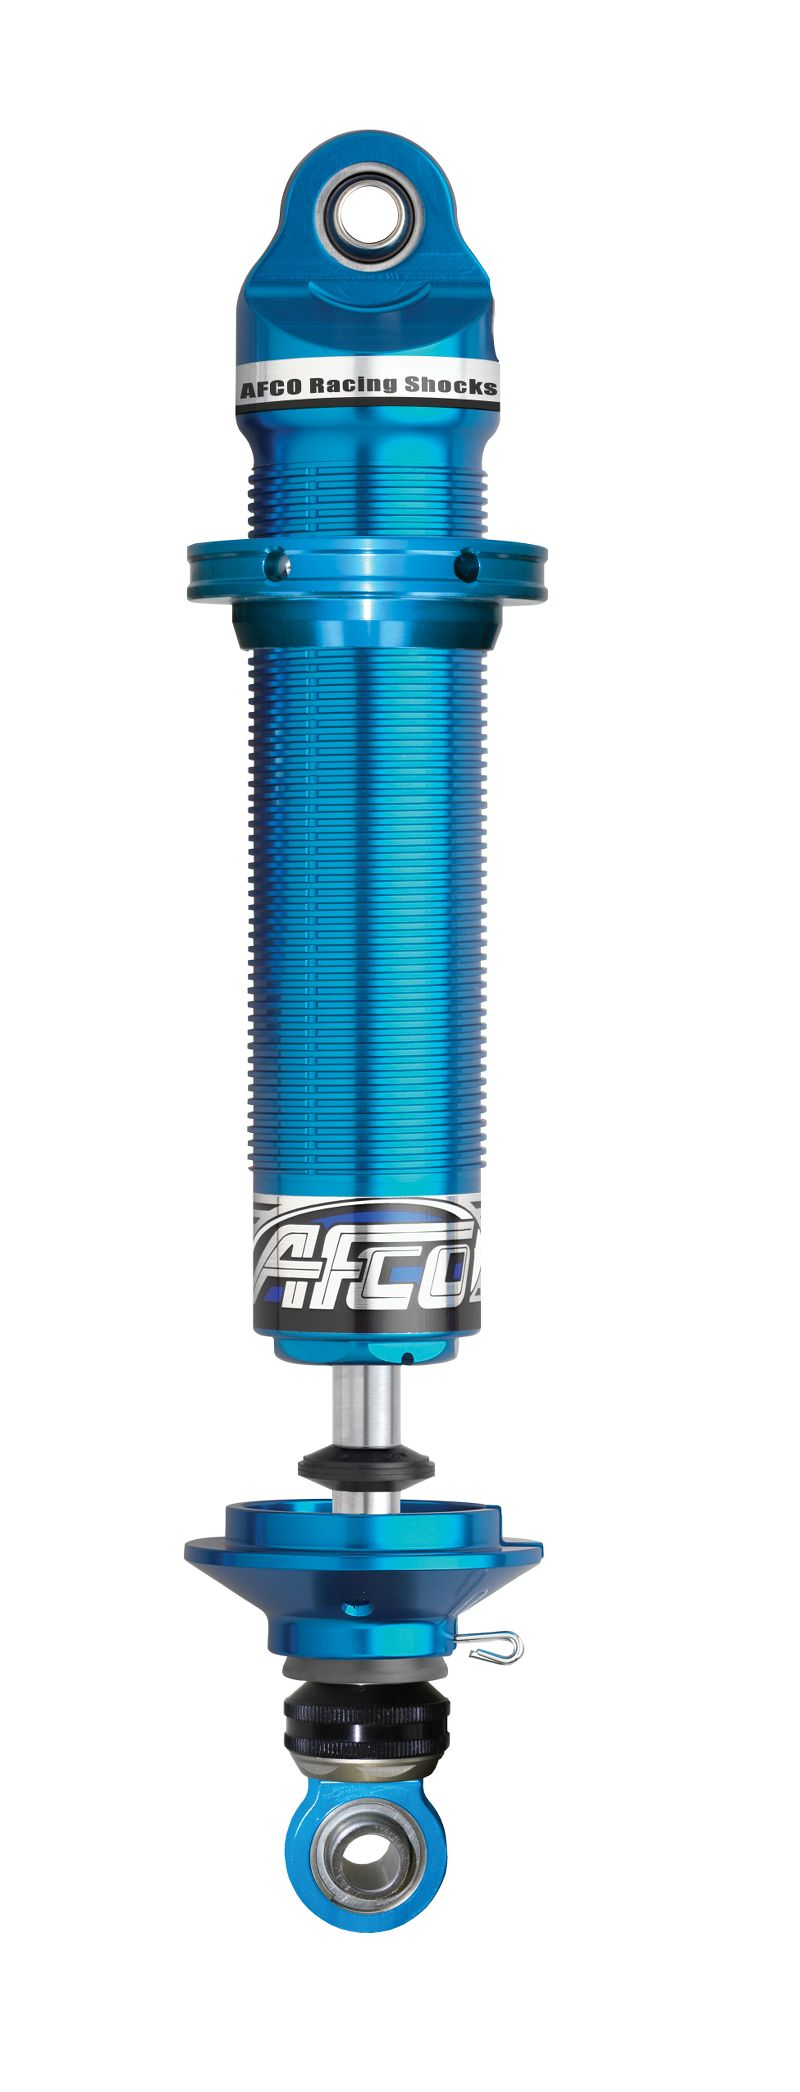 Aluminum Shock Twin Tube 36 Series Rebound Adjustable 6 Inch Stroke Comp 3/Reb 4-7